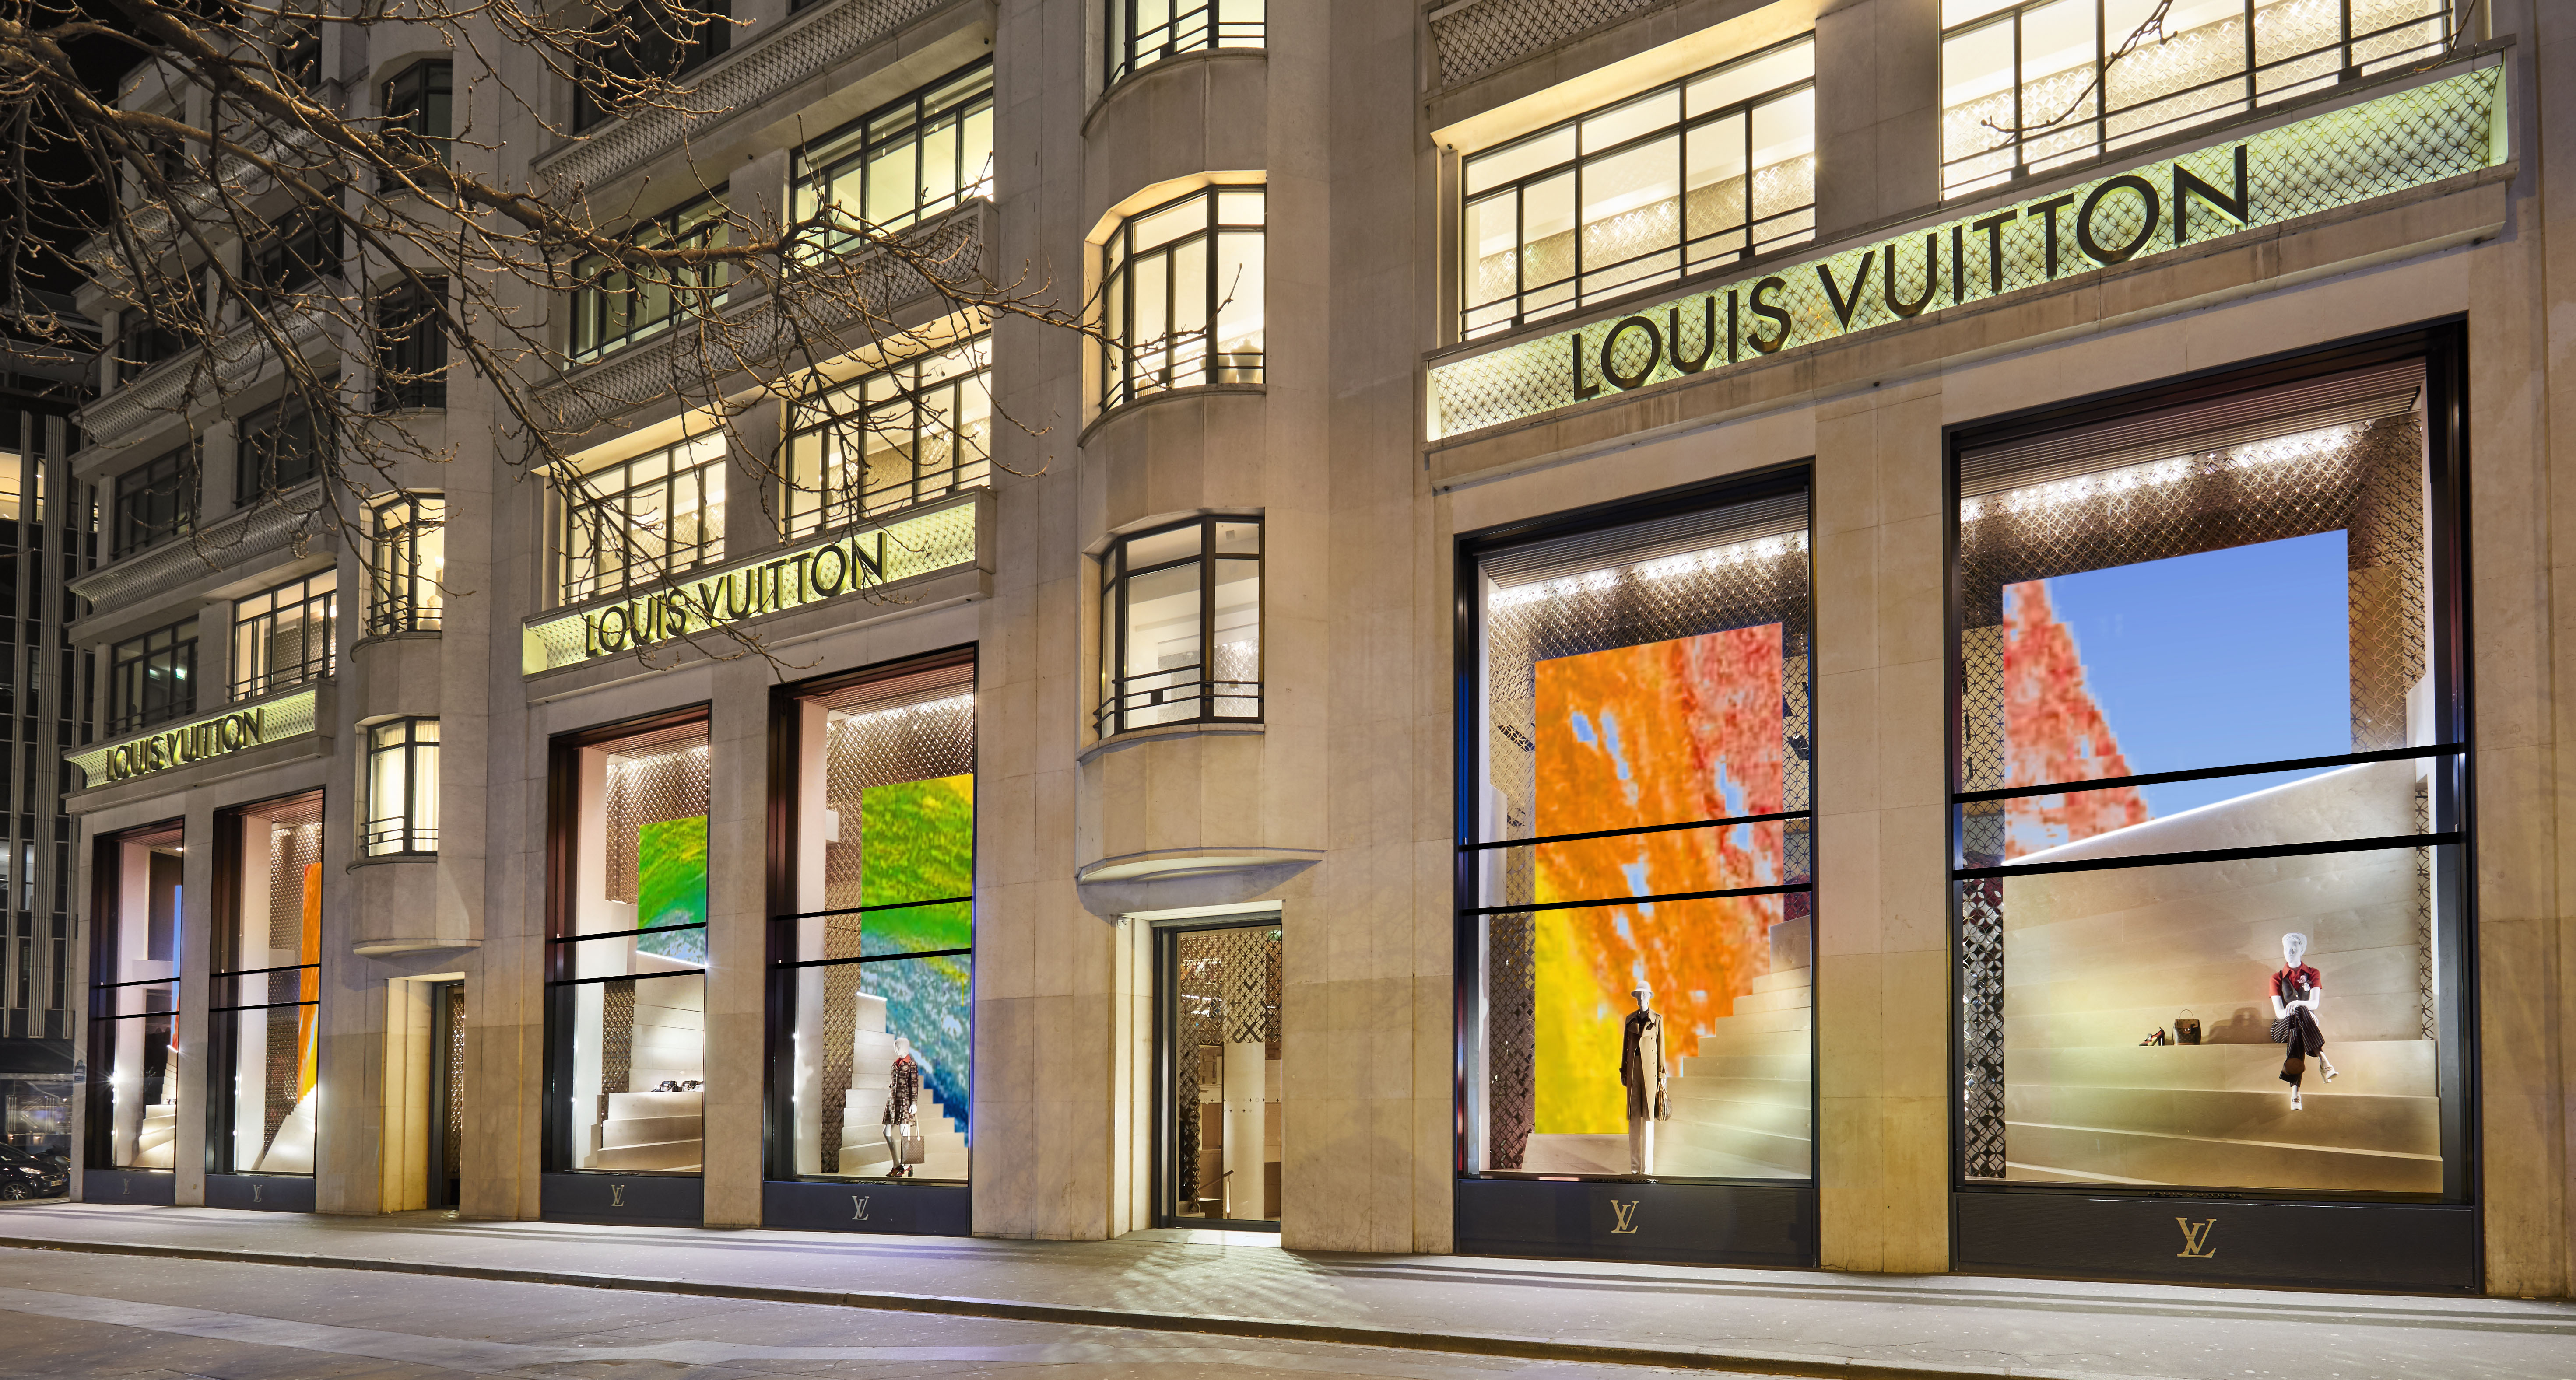 Louis vuitton store front rainbow